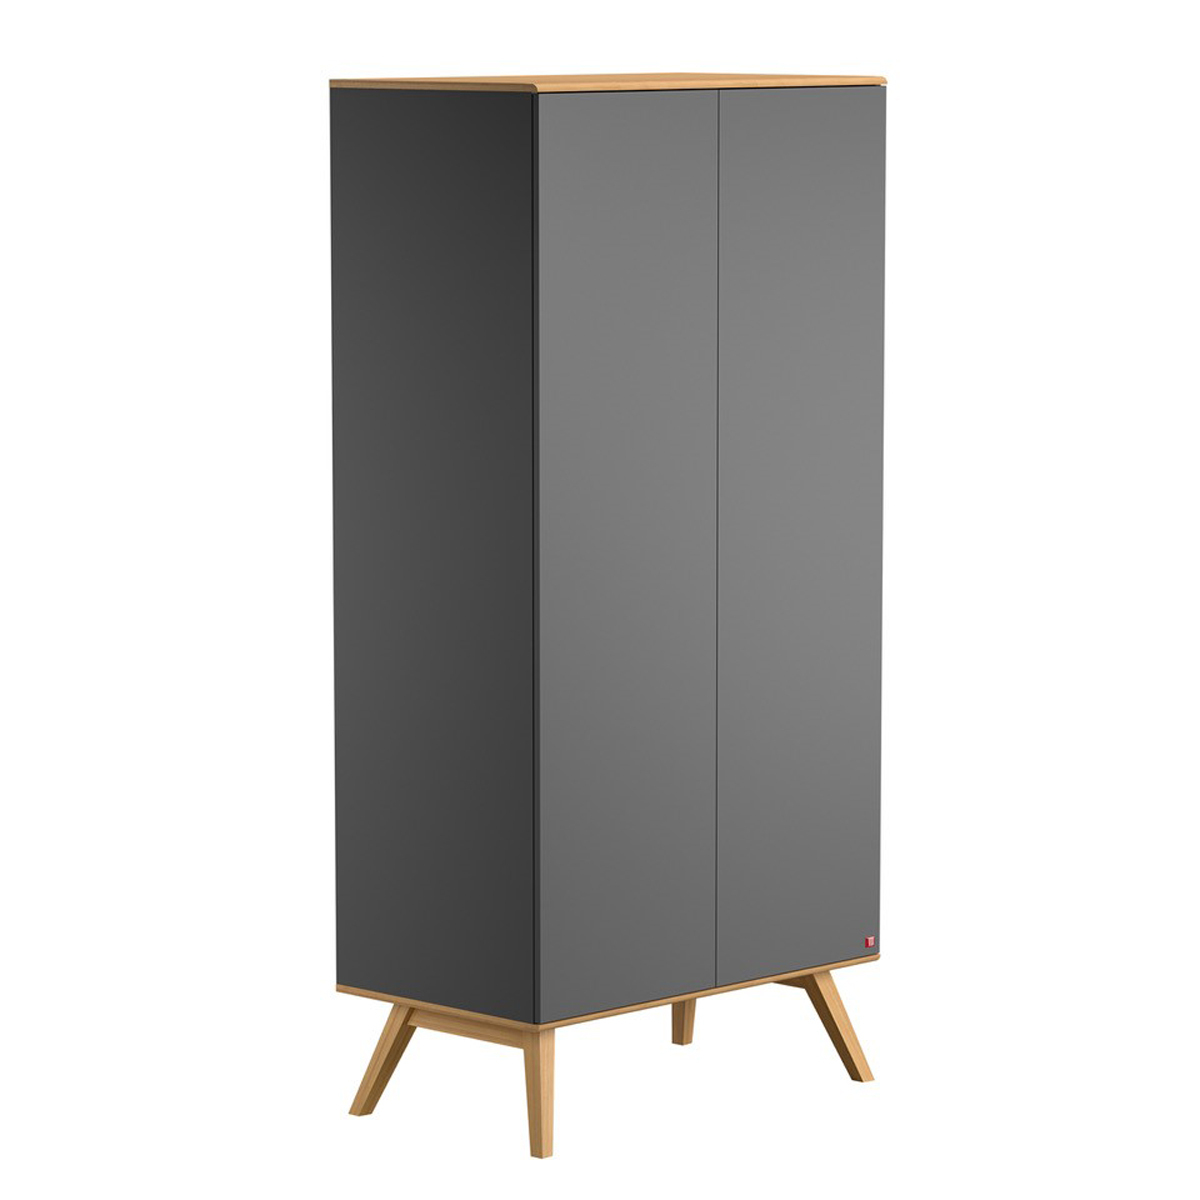 vox meubles armoire 2 portes nature gris armoire vox. Black Bedroom Furniture Sets. Home Design Ideas